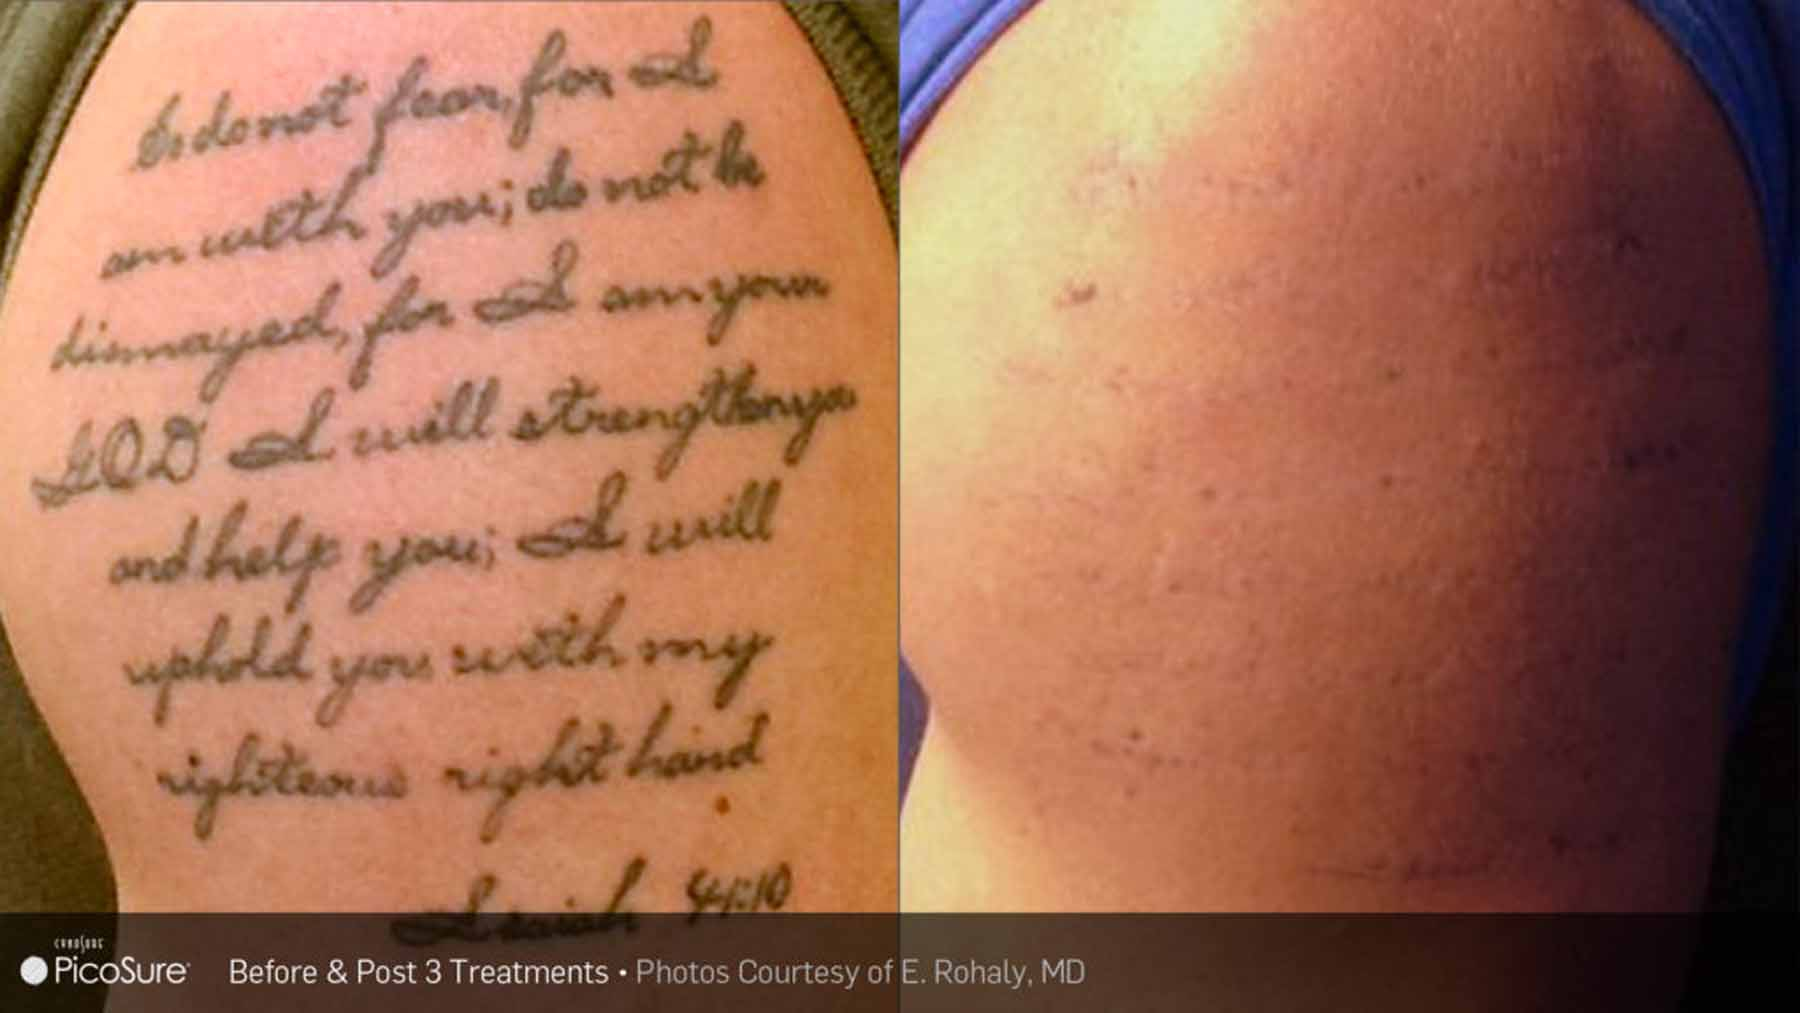 Before and after laser removal treatment with Picosure